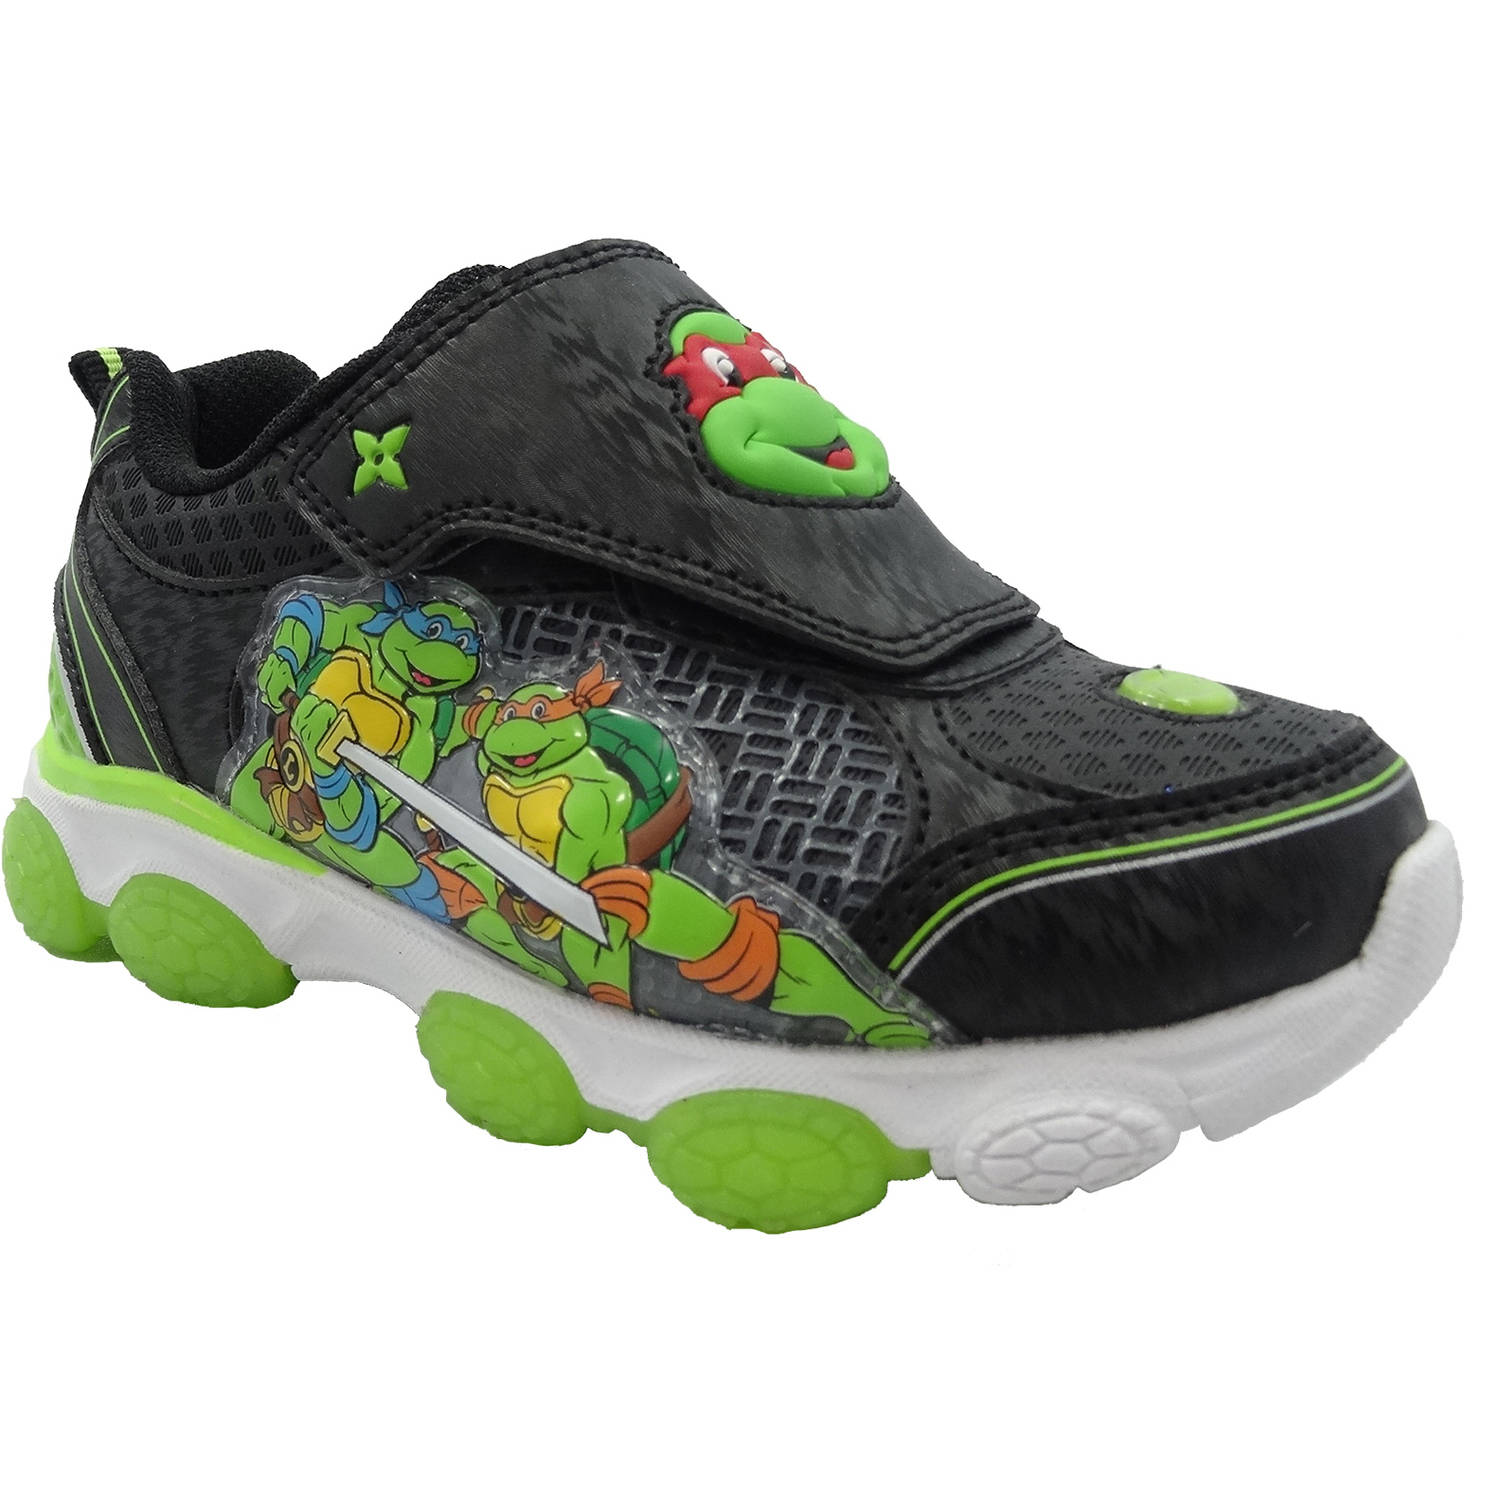 Teenage Mutant Ninja Turtle Toddler Boys' Athletic Shoe